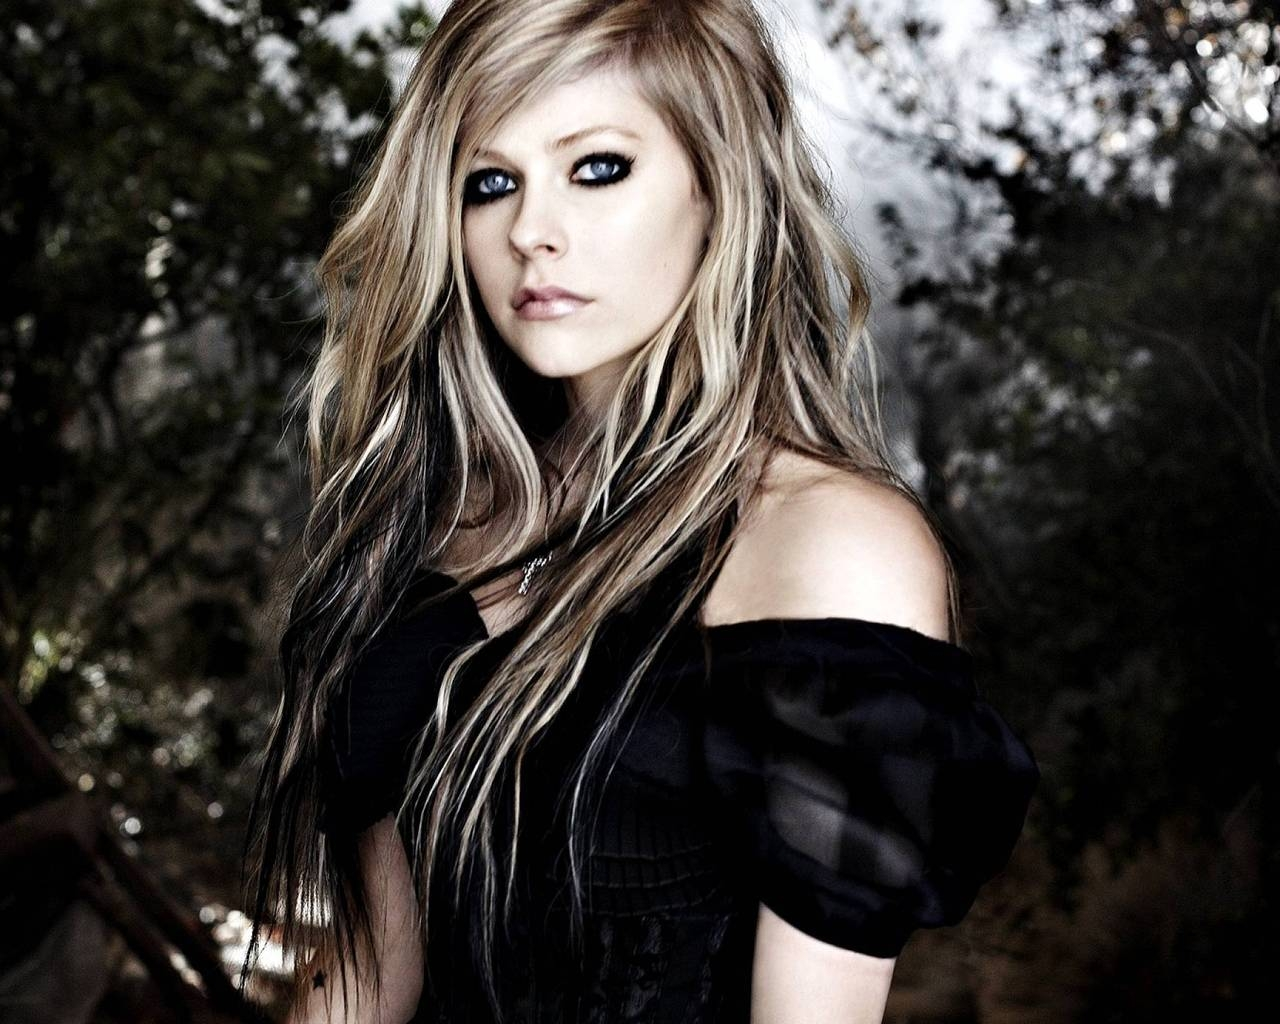 Avril Lavigne Forest for 1280 x 1024 resolution